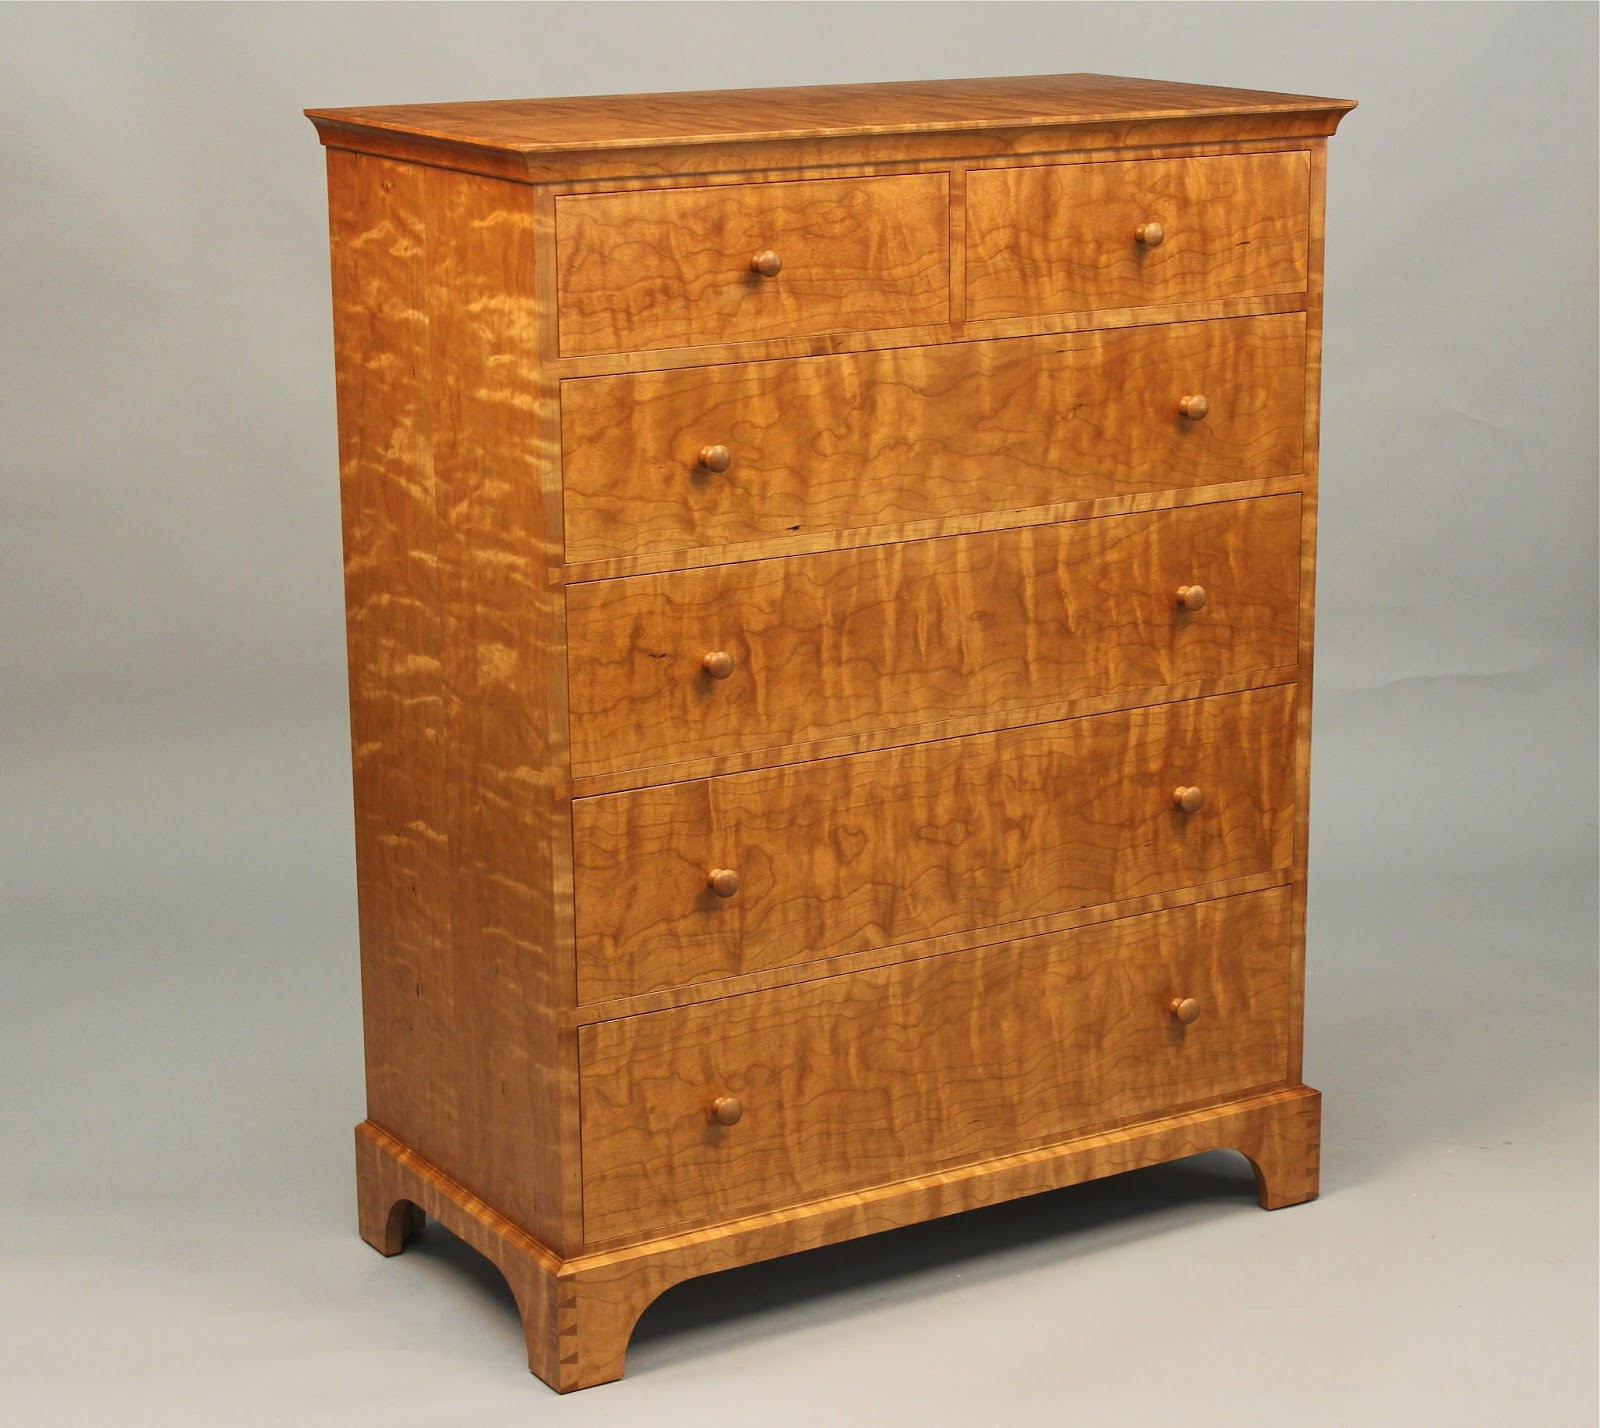 Museum Quality Custom Handmade Furniture